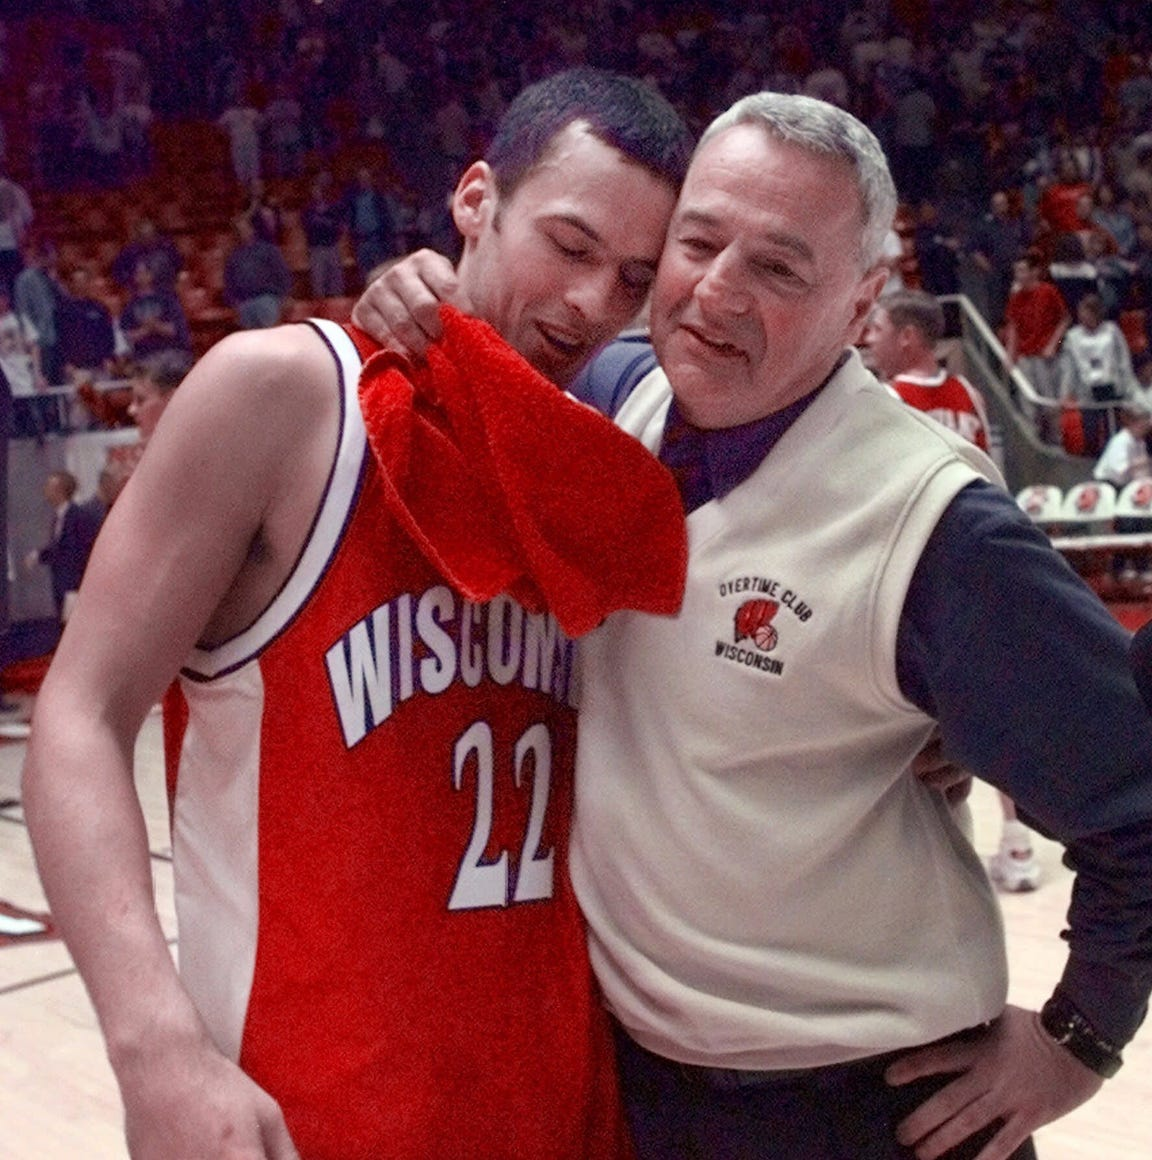 Wisconsin coach Dick Bennett hugs Mike Kelley after Arizona was upset 66-59 by Wisconsin in the second round of the NCAA West Regionals, Saturday, March 18, 2000.